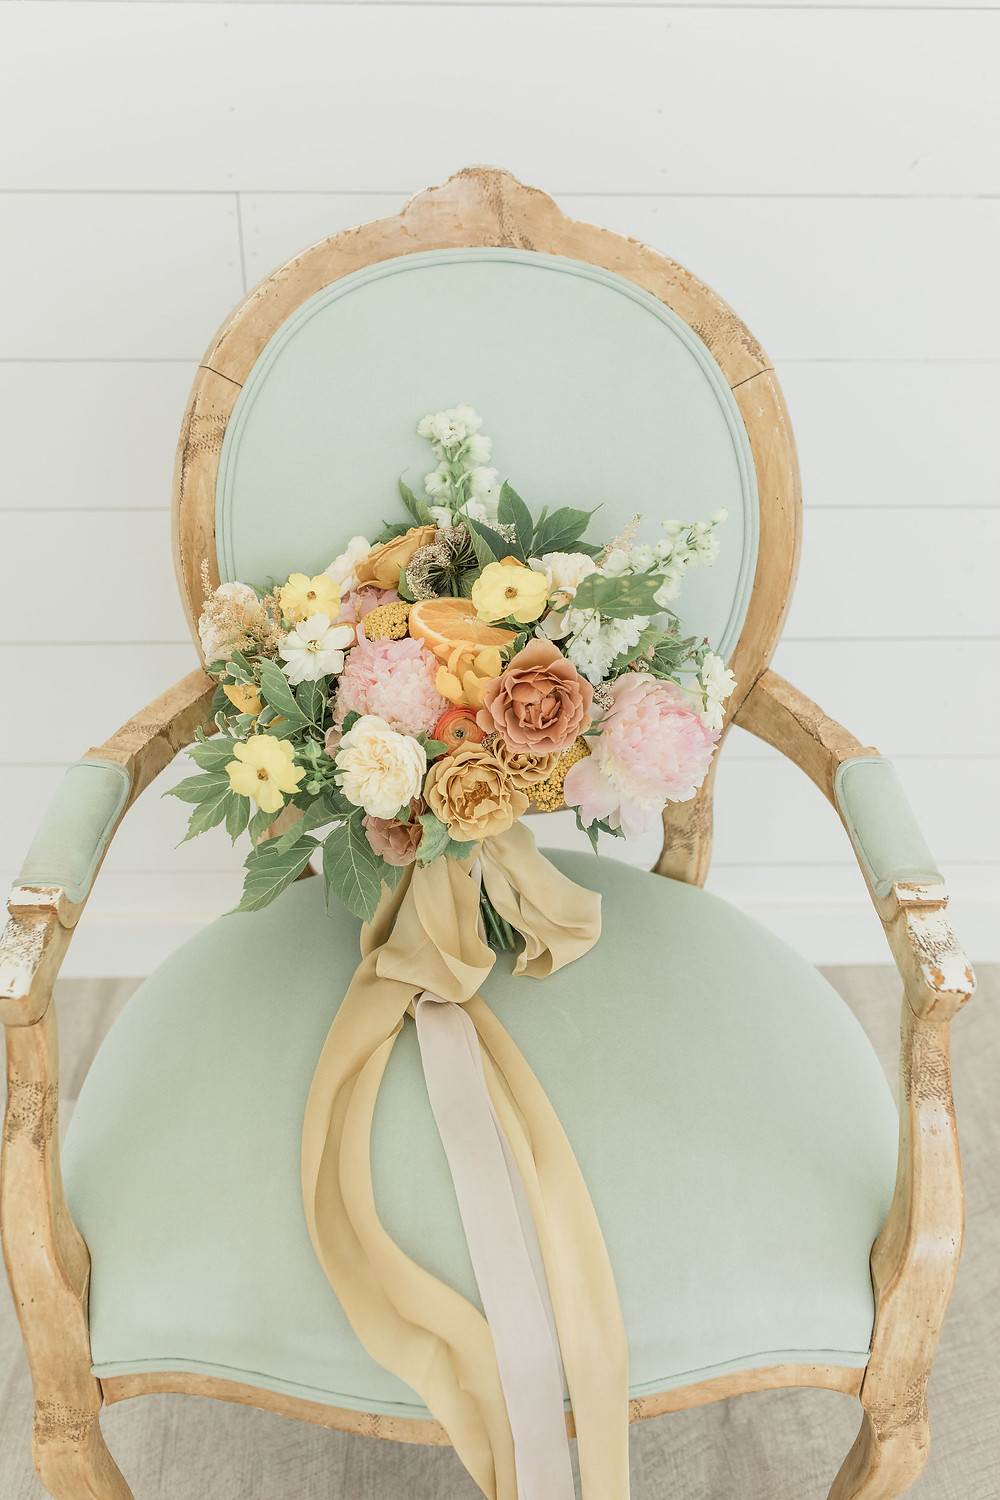 Blush and yellows make up the bridal bouquet placed on our sage green chair